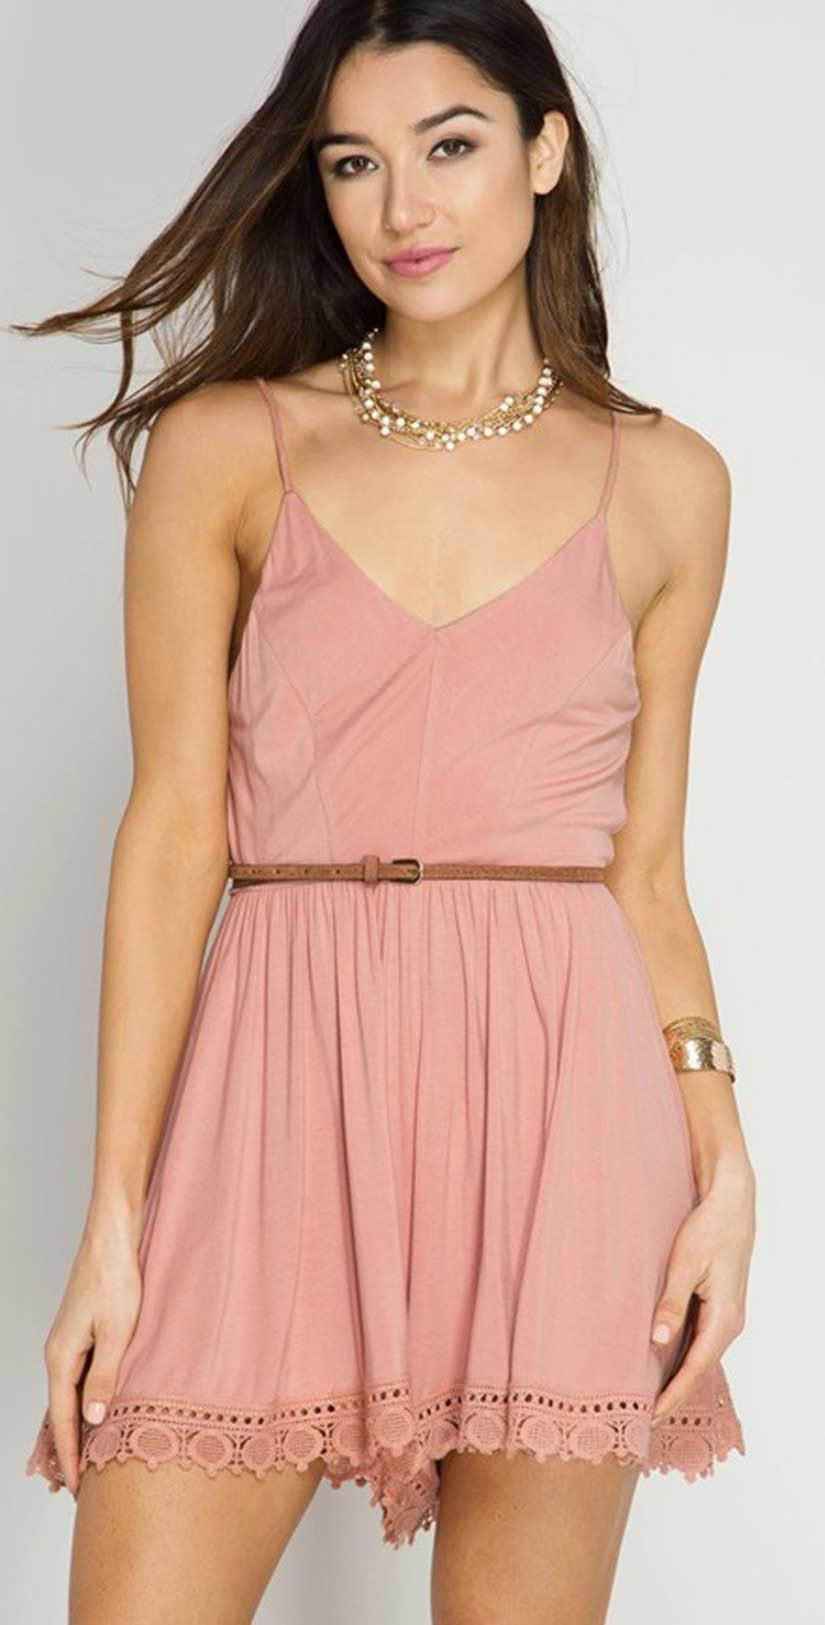 She + Sky Cami Romper With Lace Hem Line In Dusty Rose SL4120: